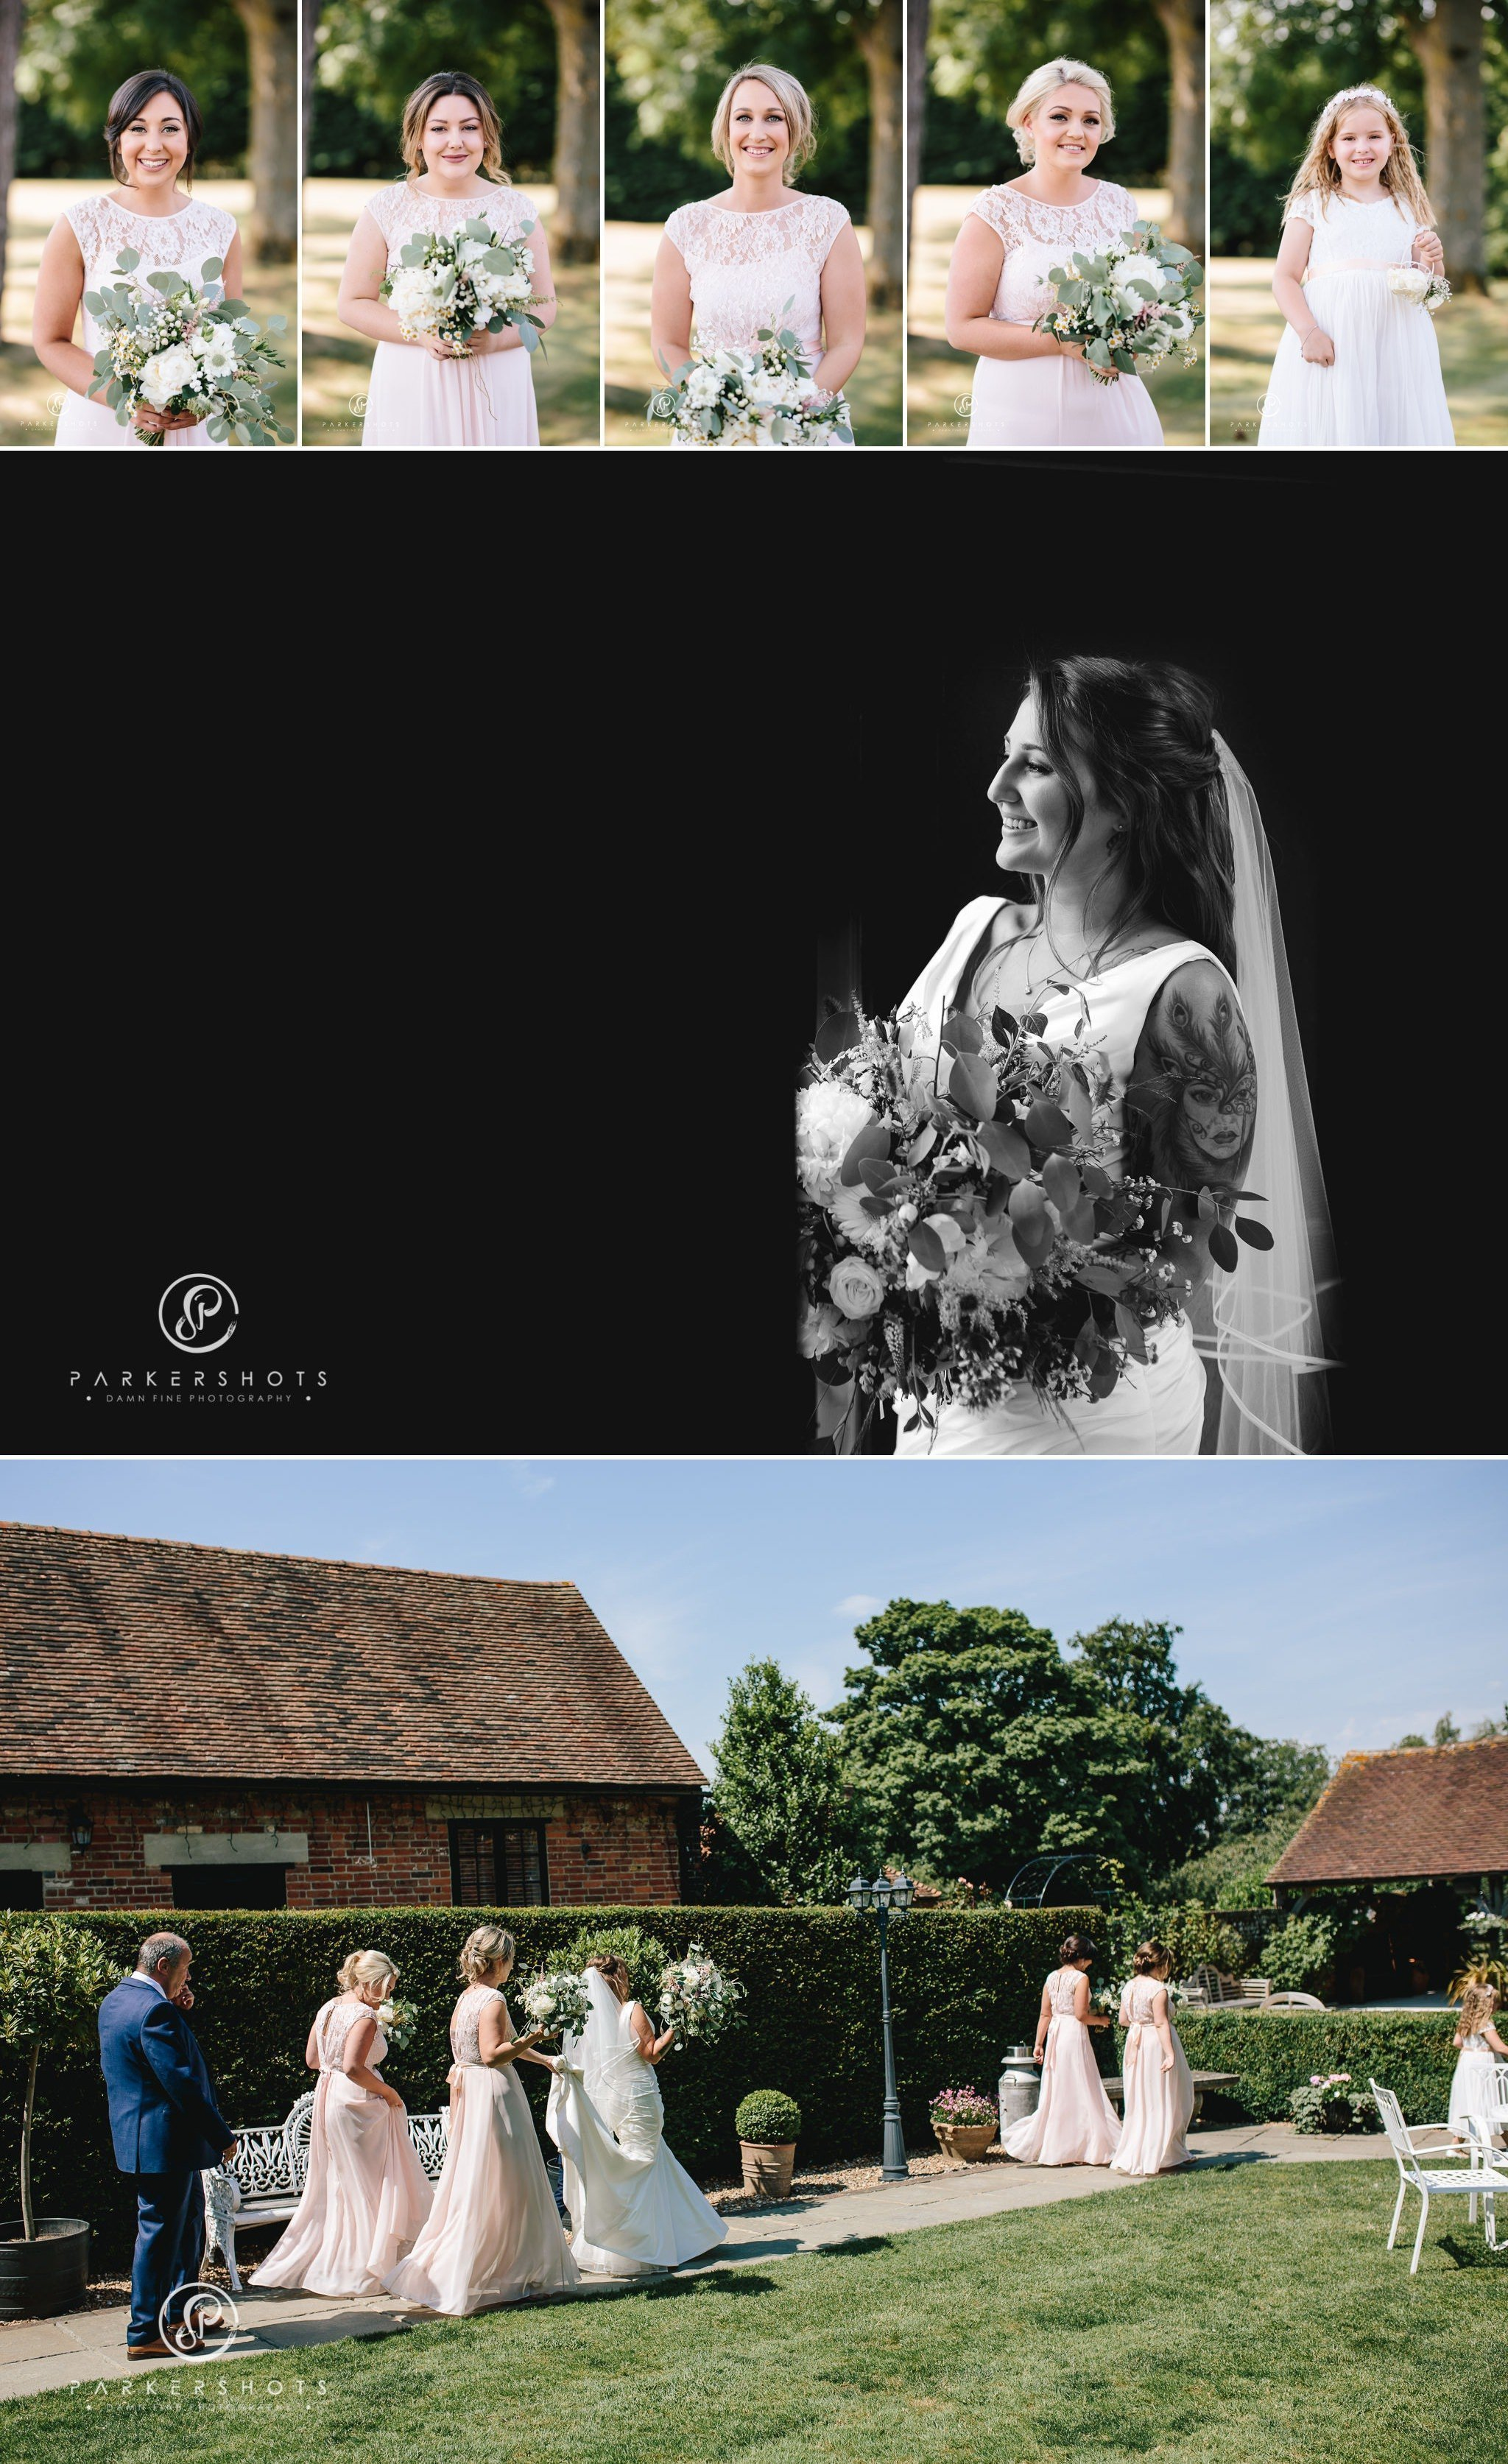 Portraits of bridesmaids and bride at Winters Barns